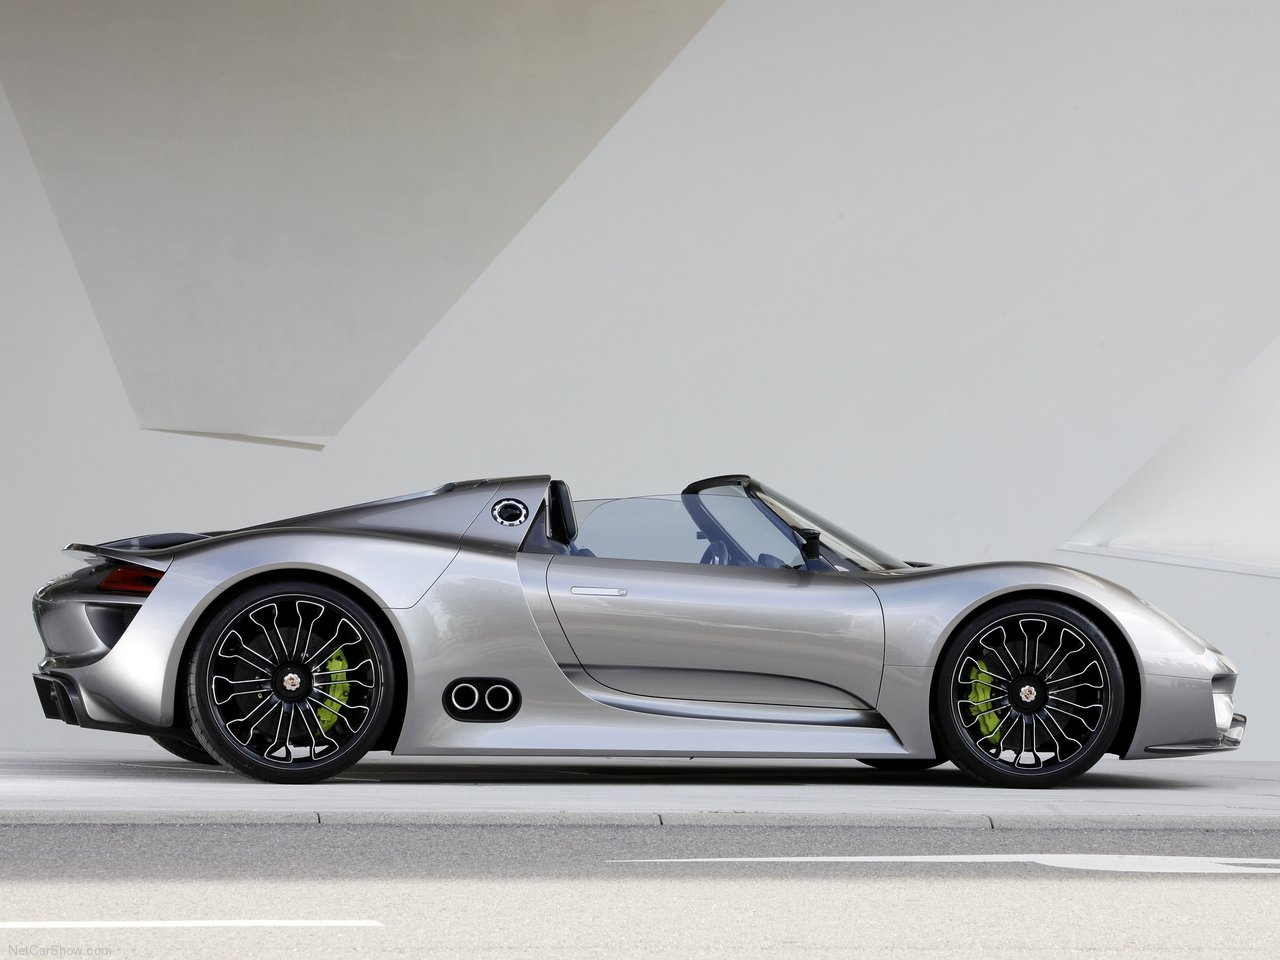 porsche 918 spyder concept precio porsche 918 spyder purchase price to nudge 750 000 photos 1. Black Bedroom Furniture Sets. Home Design Ideas